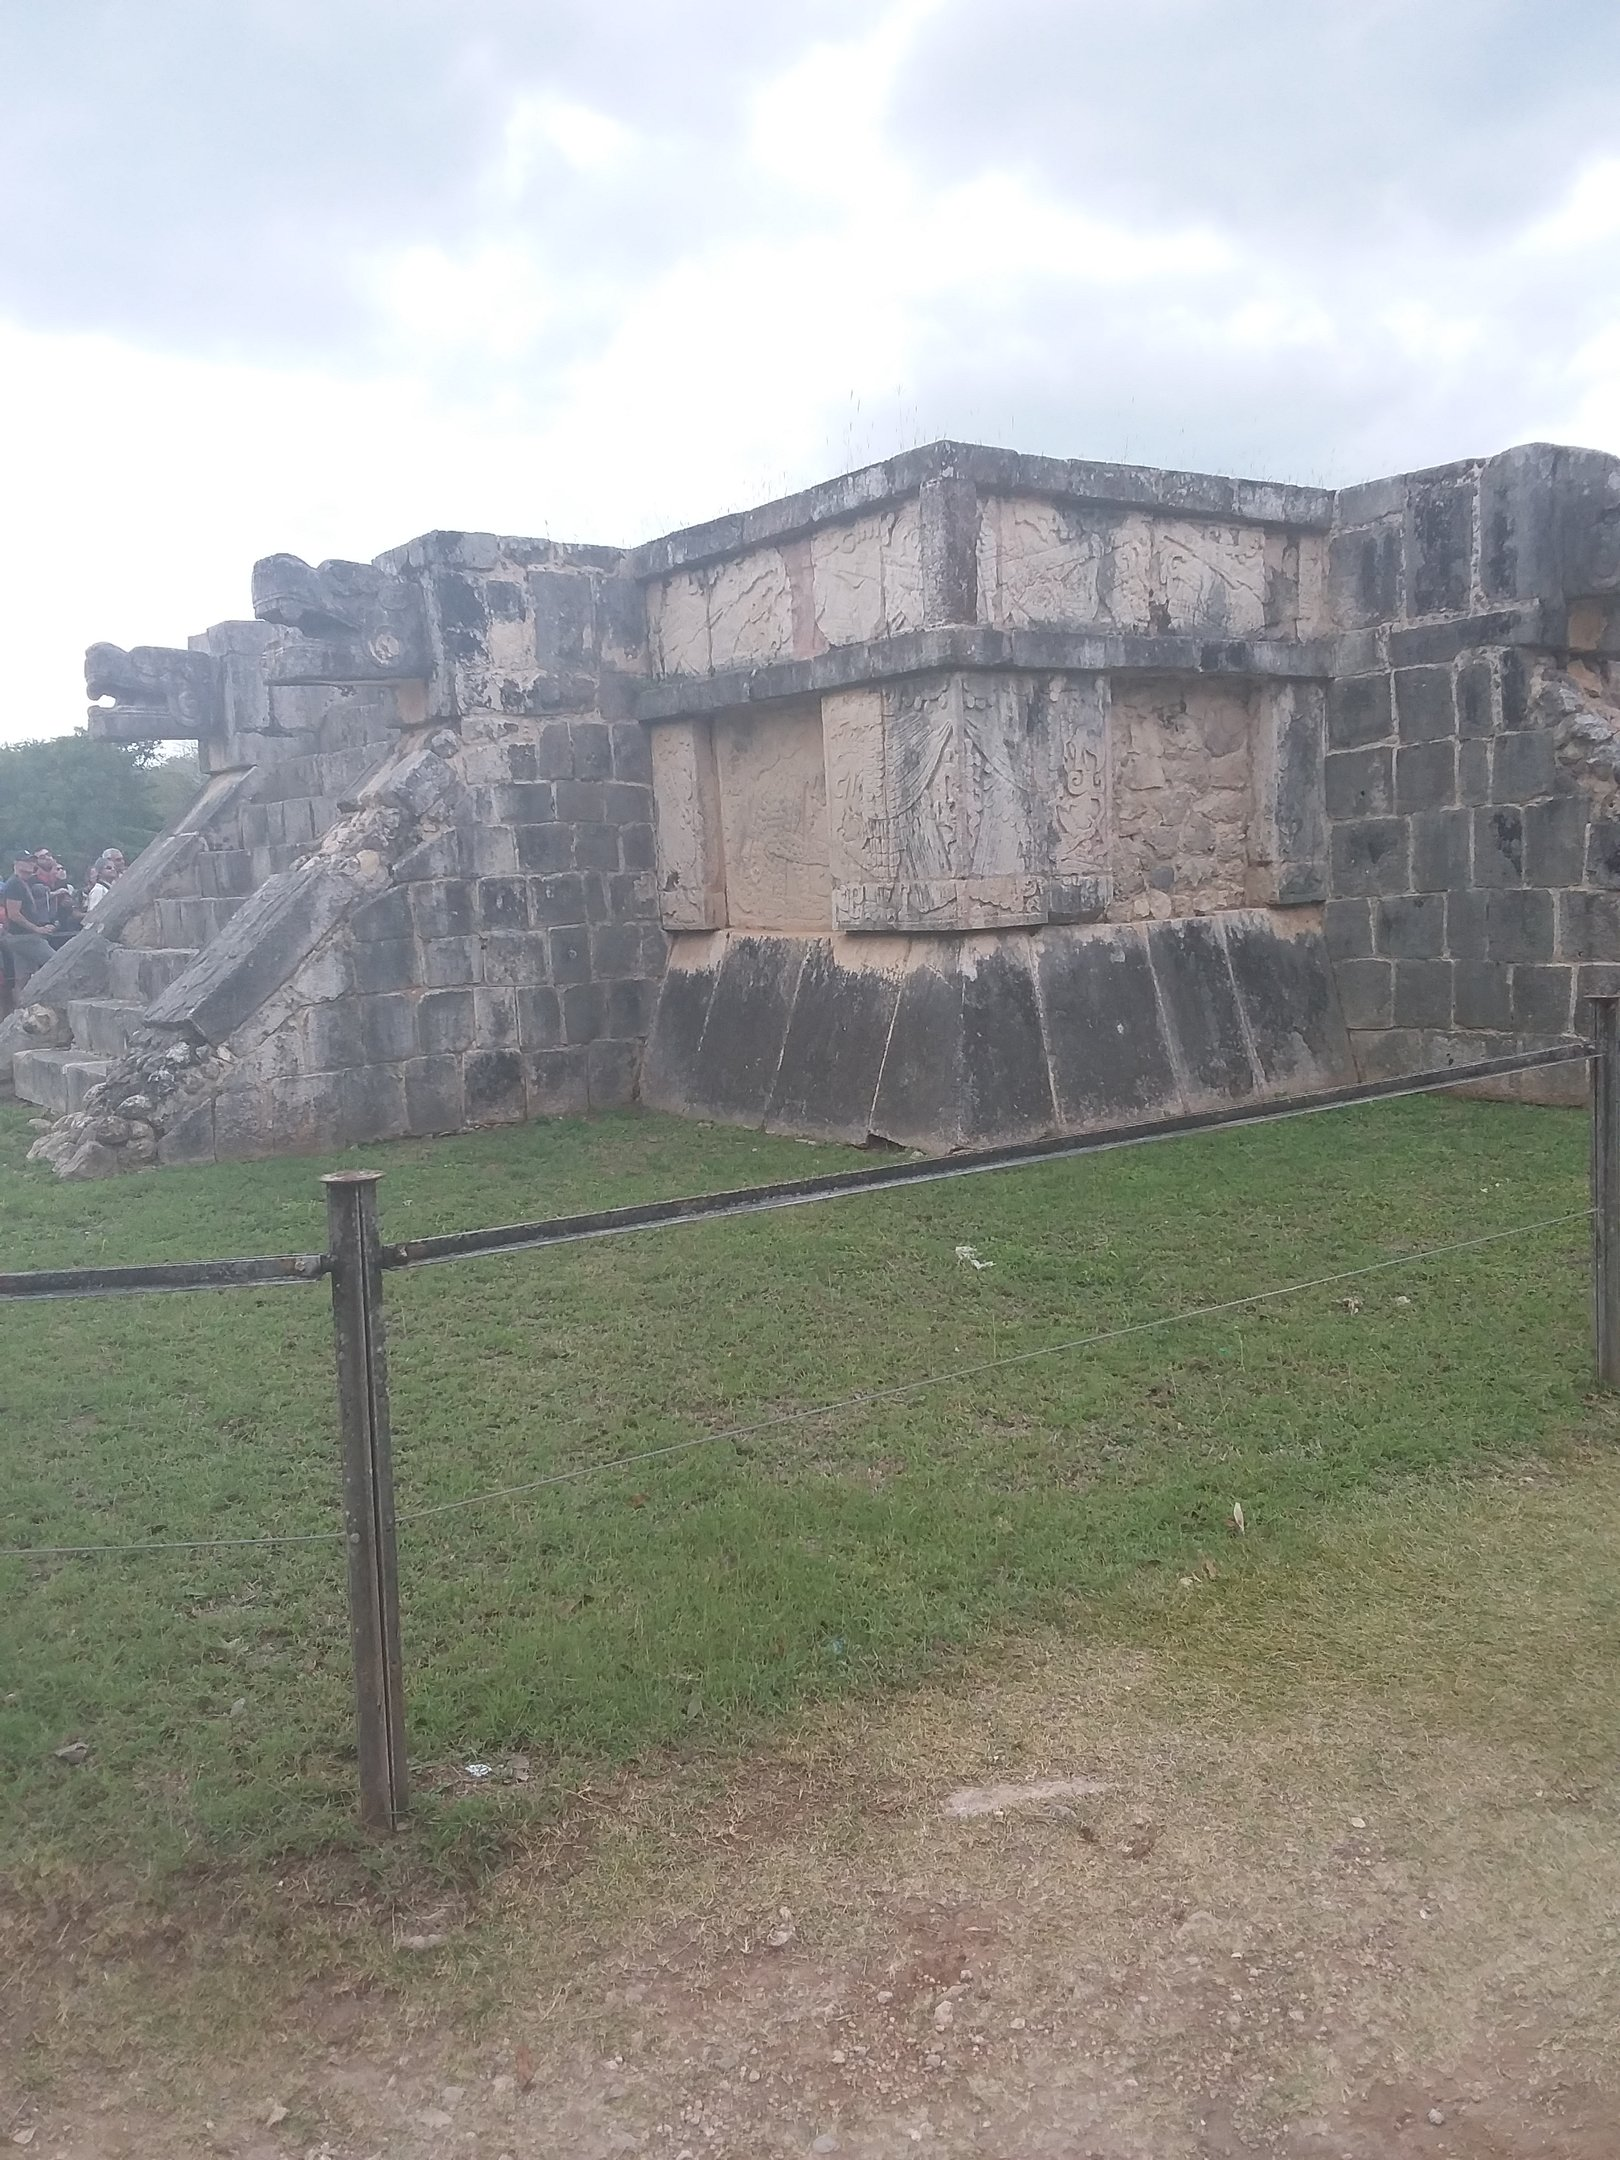 20181224_091609-jpg.48210_Chichen Itza (Not So Much a Story Than It Is Pictures)_Travel Stories_Squat the Planet_4:02 PM